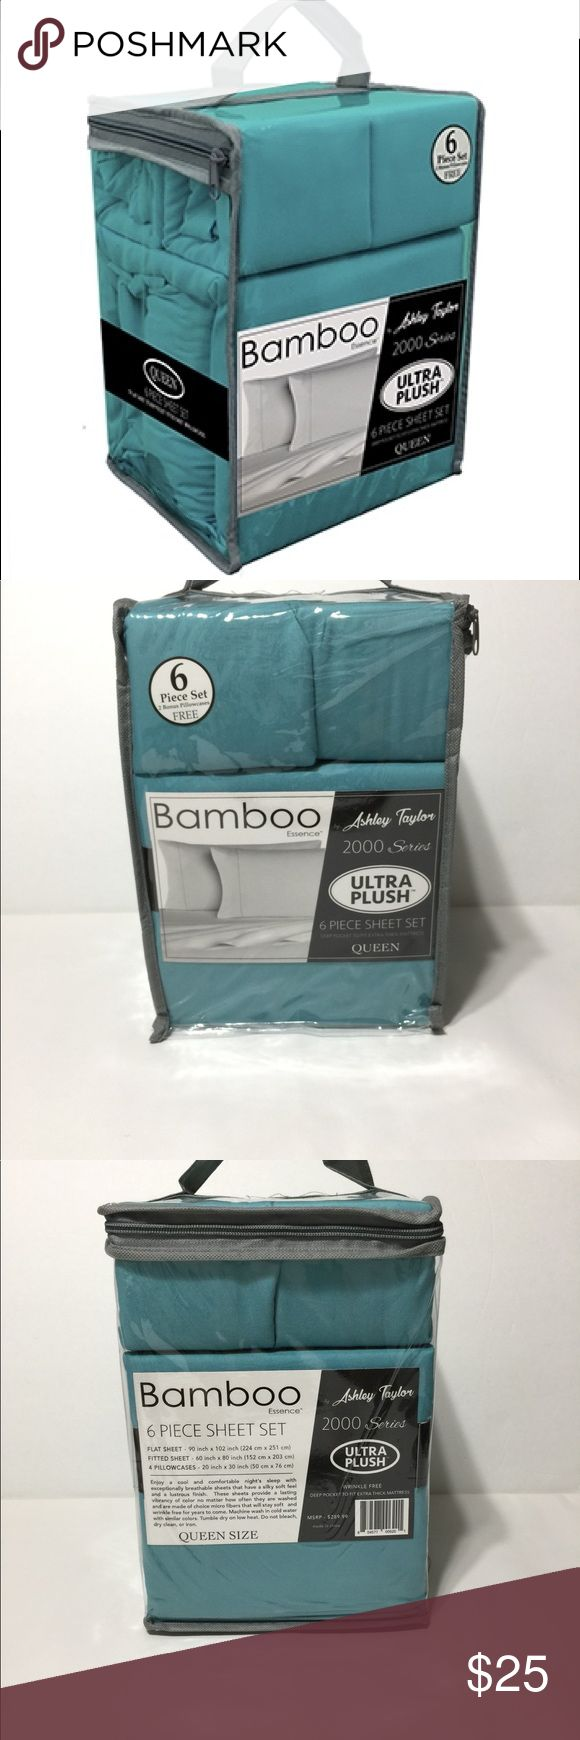 """Bamboo Essence by Ashley Taylor 2000 series QUEEN SIZE: 6 Piece Set includes 1 flat sheet, 1 deep pocket fitted sheet with wrap around elastic, and 4 pillow cases 16"""" Deep pocket fitted sheet for an 18"""" - 20"""" thick mattress Wrinkle free Super Soft Other"""